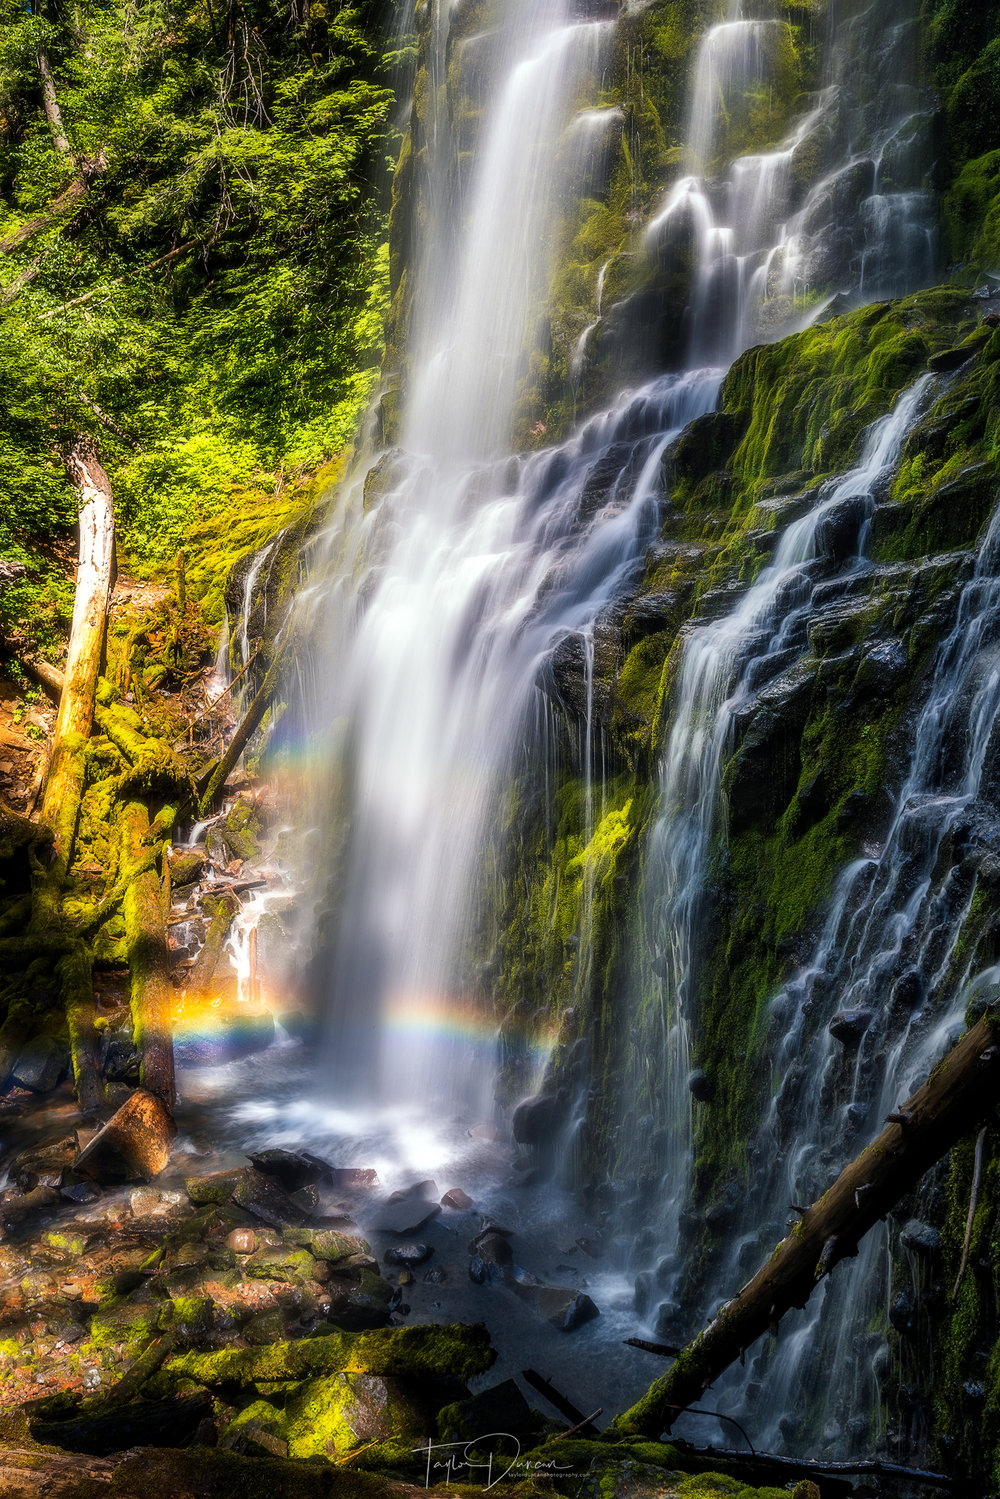 Hike up to the right side of the falls for a chance to see a rainbow!